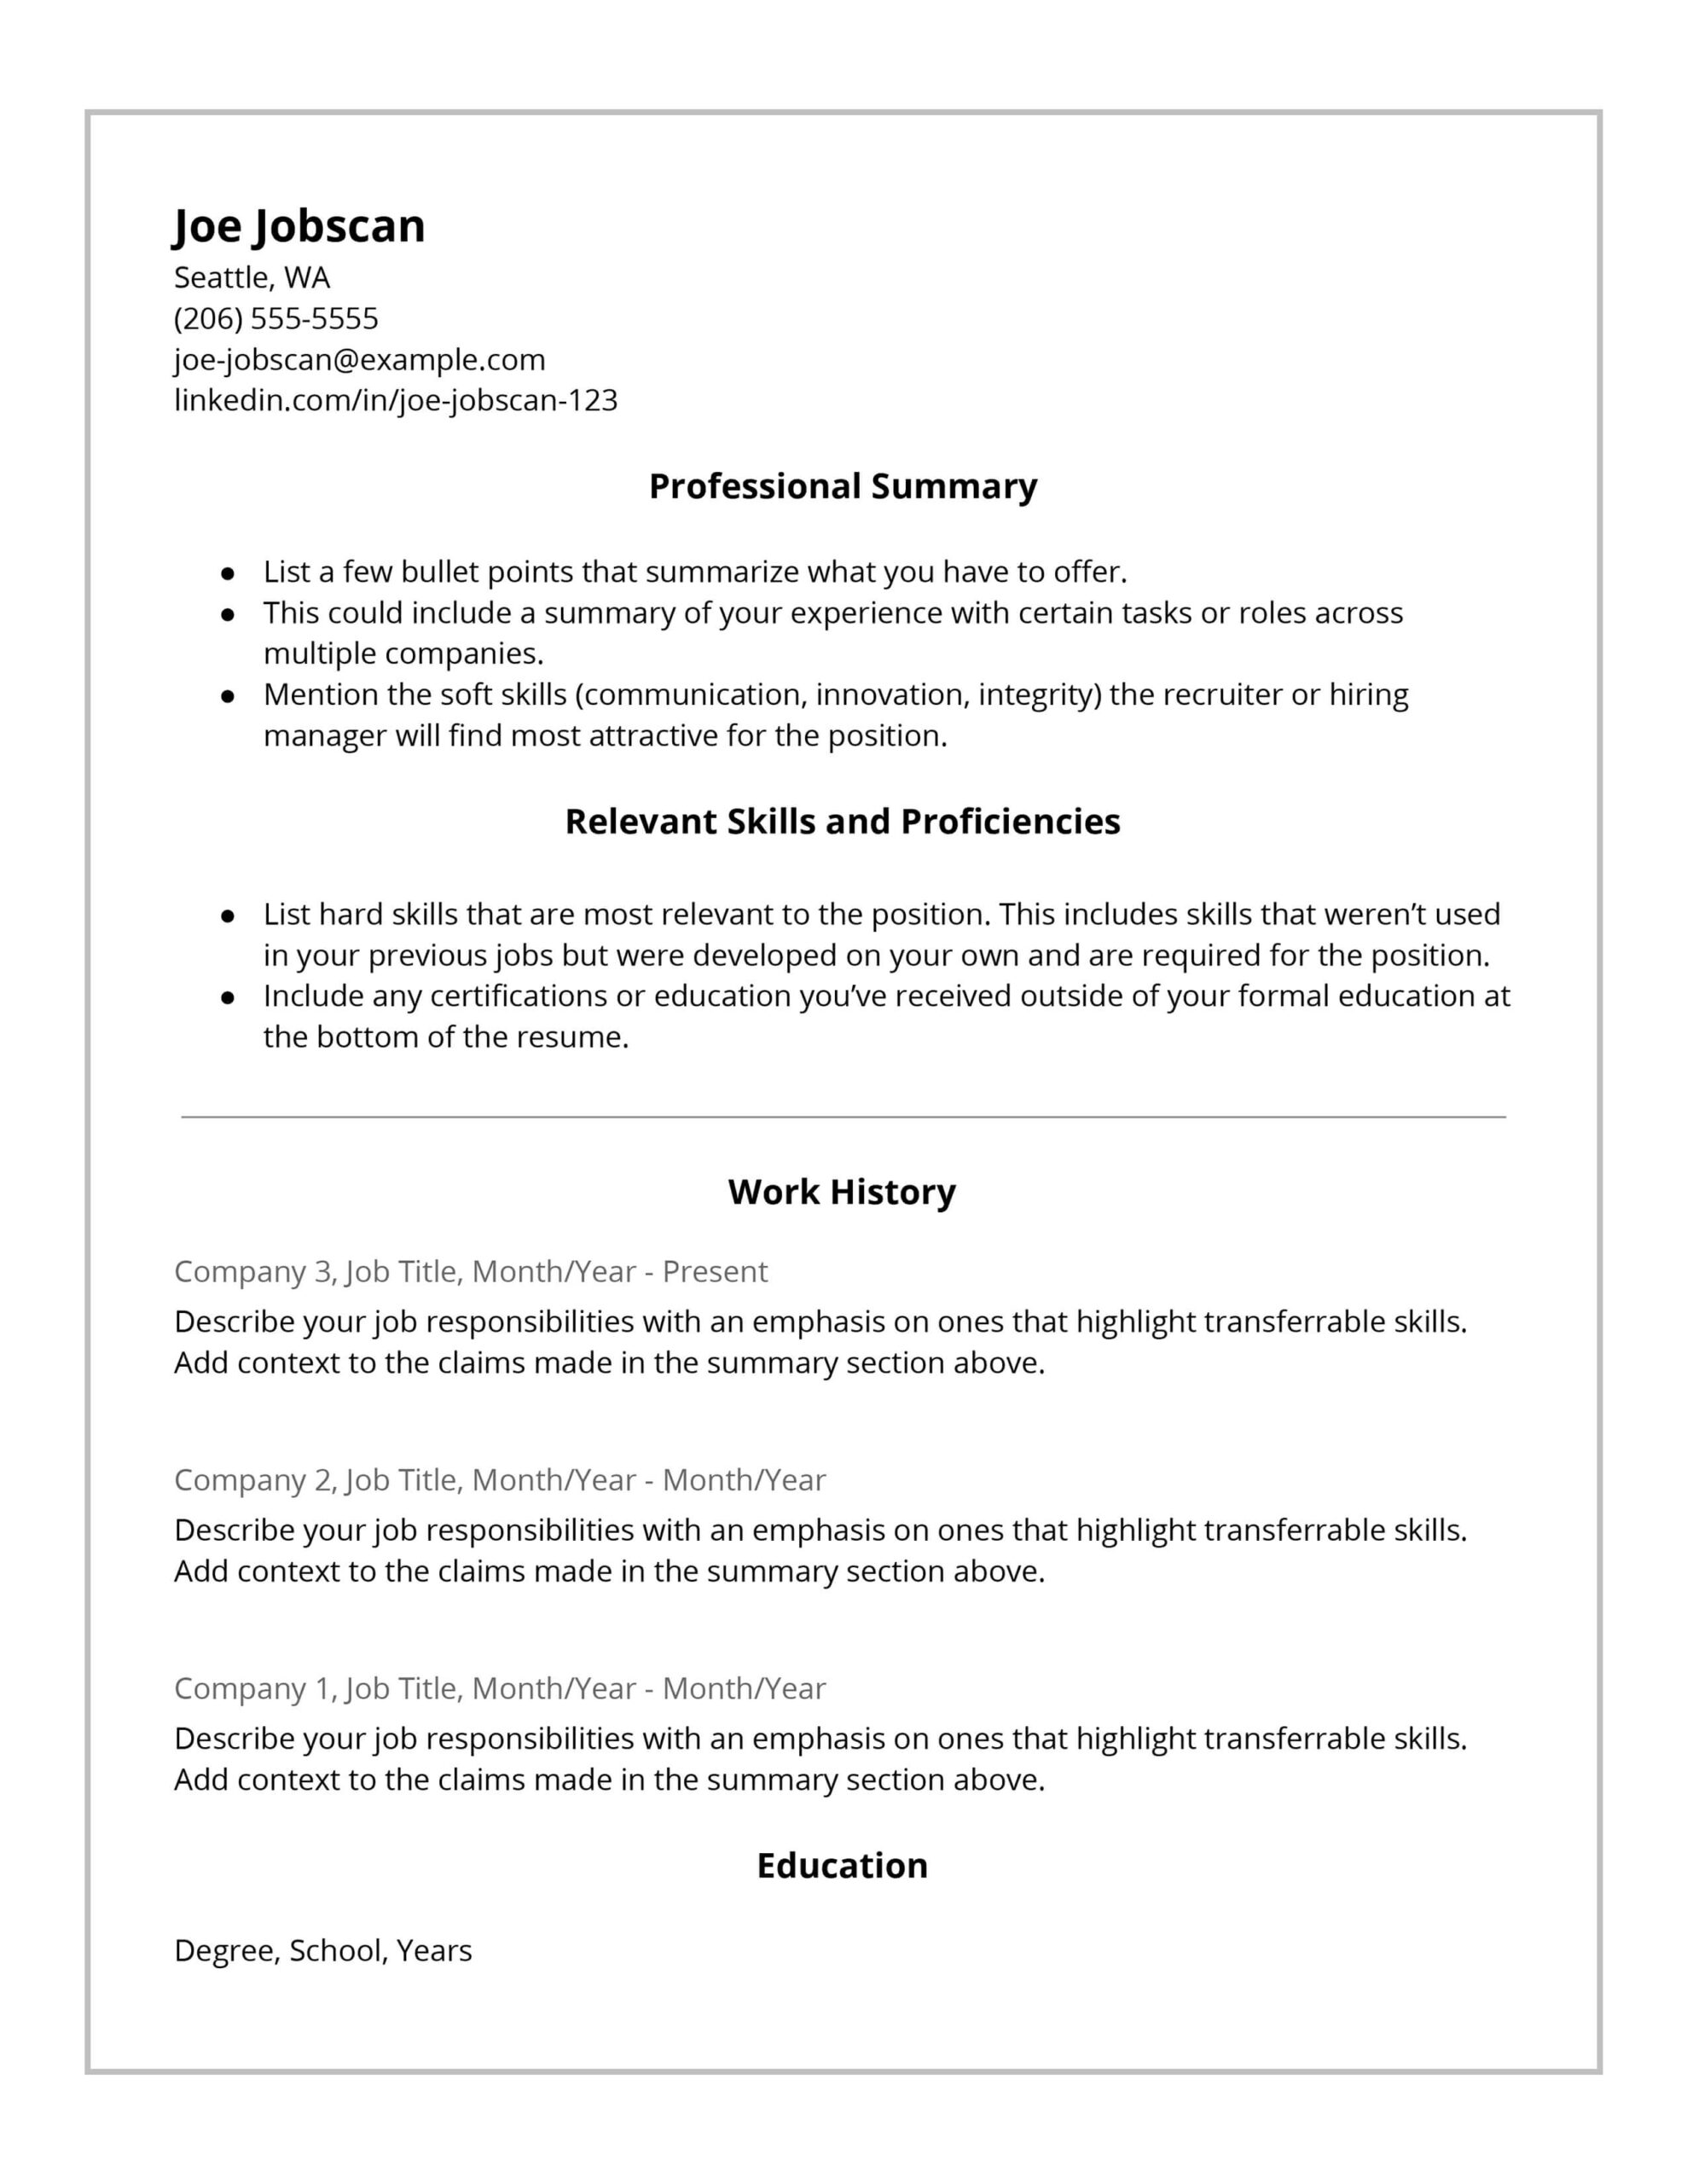 recruiters hate the functional resume format here for any job position hybrid template Resume Resume For Any Job Position